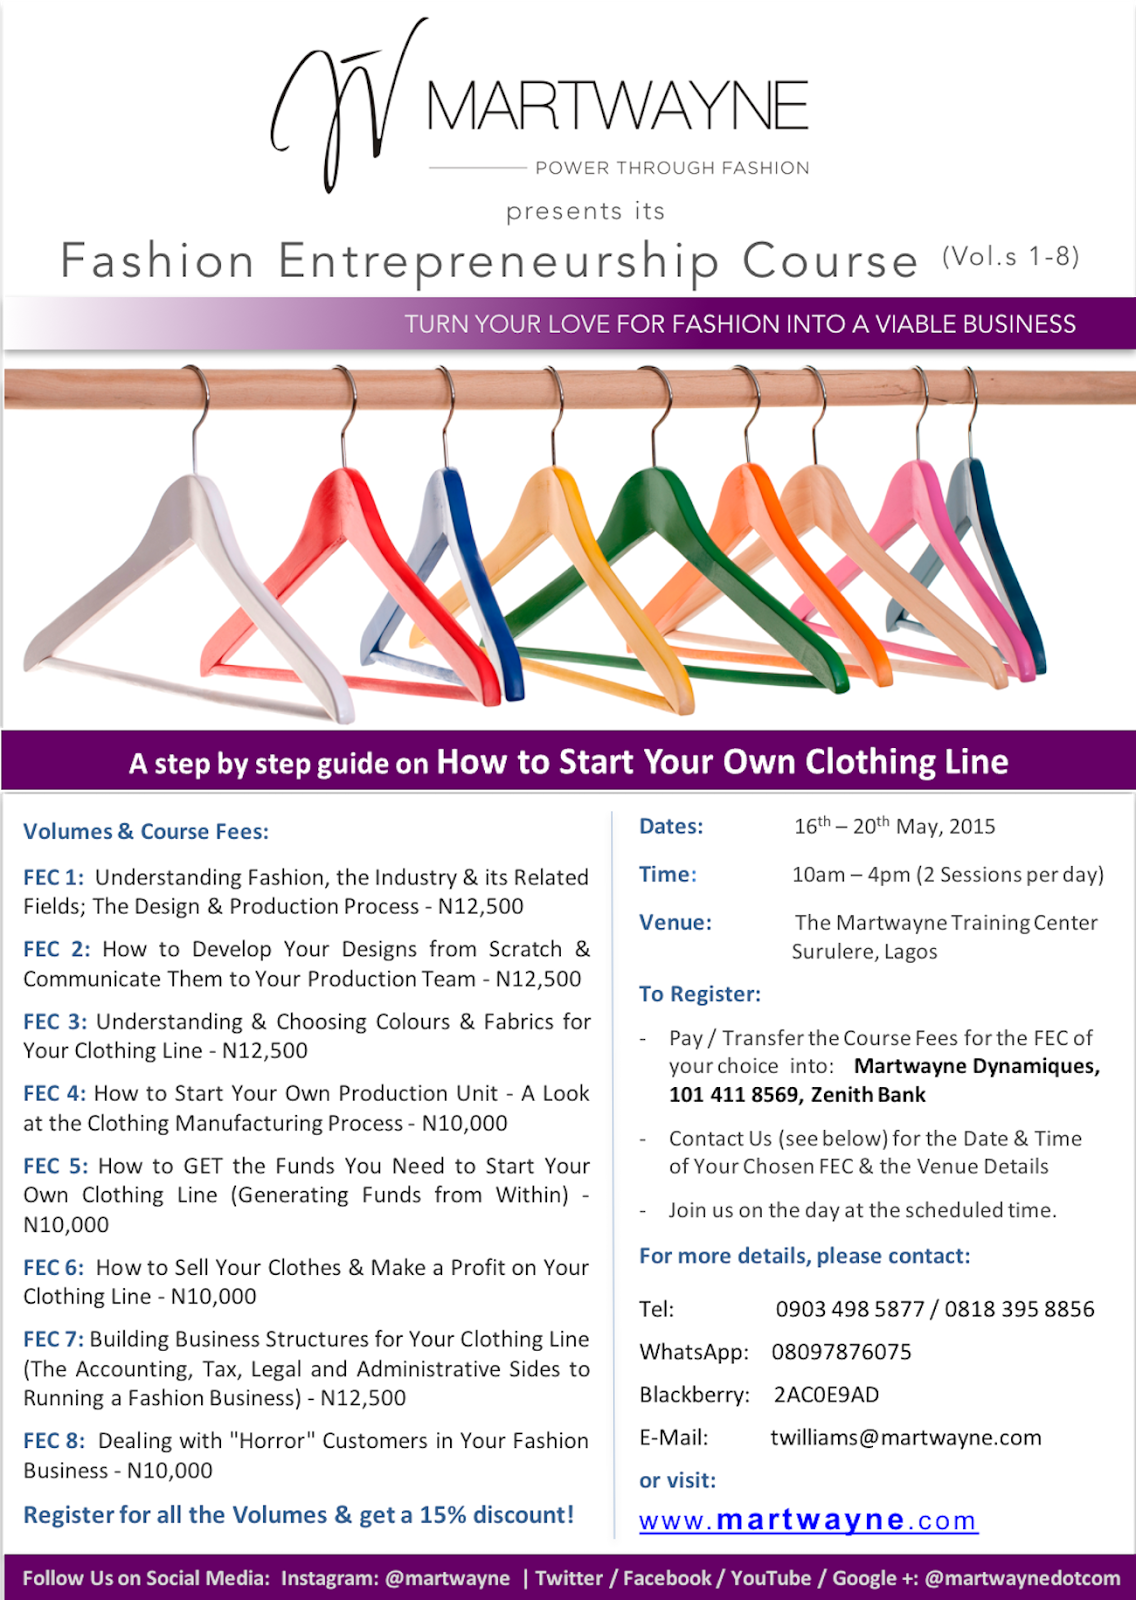 Register for our Fashion Entrepreneurship Course (Vol.s 1-8); Dates: 16th - 20th May, 2016